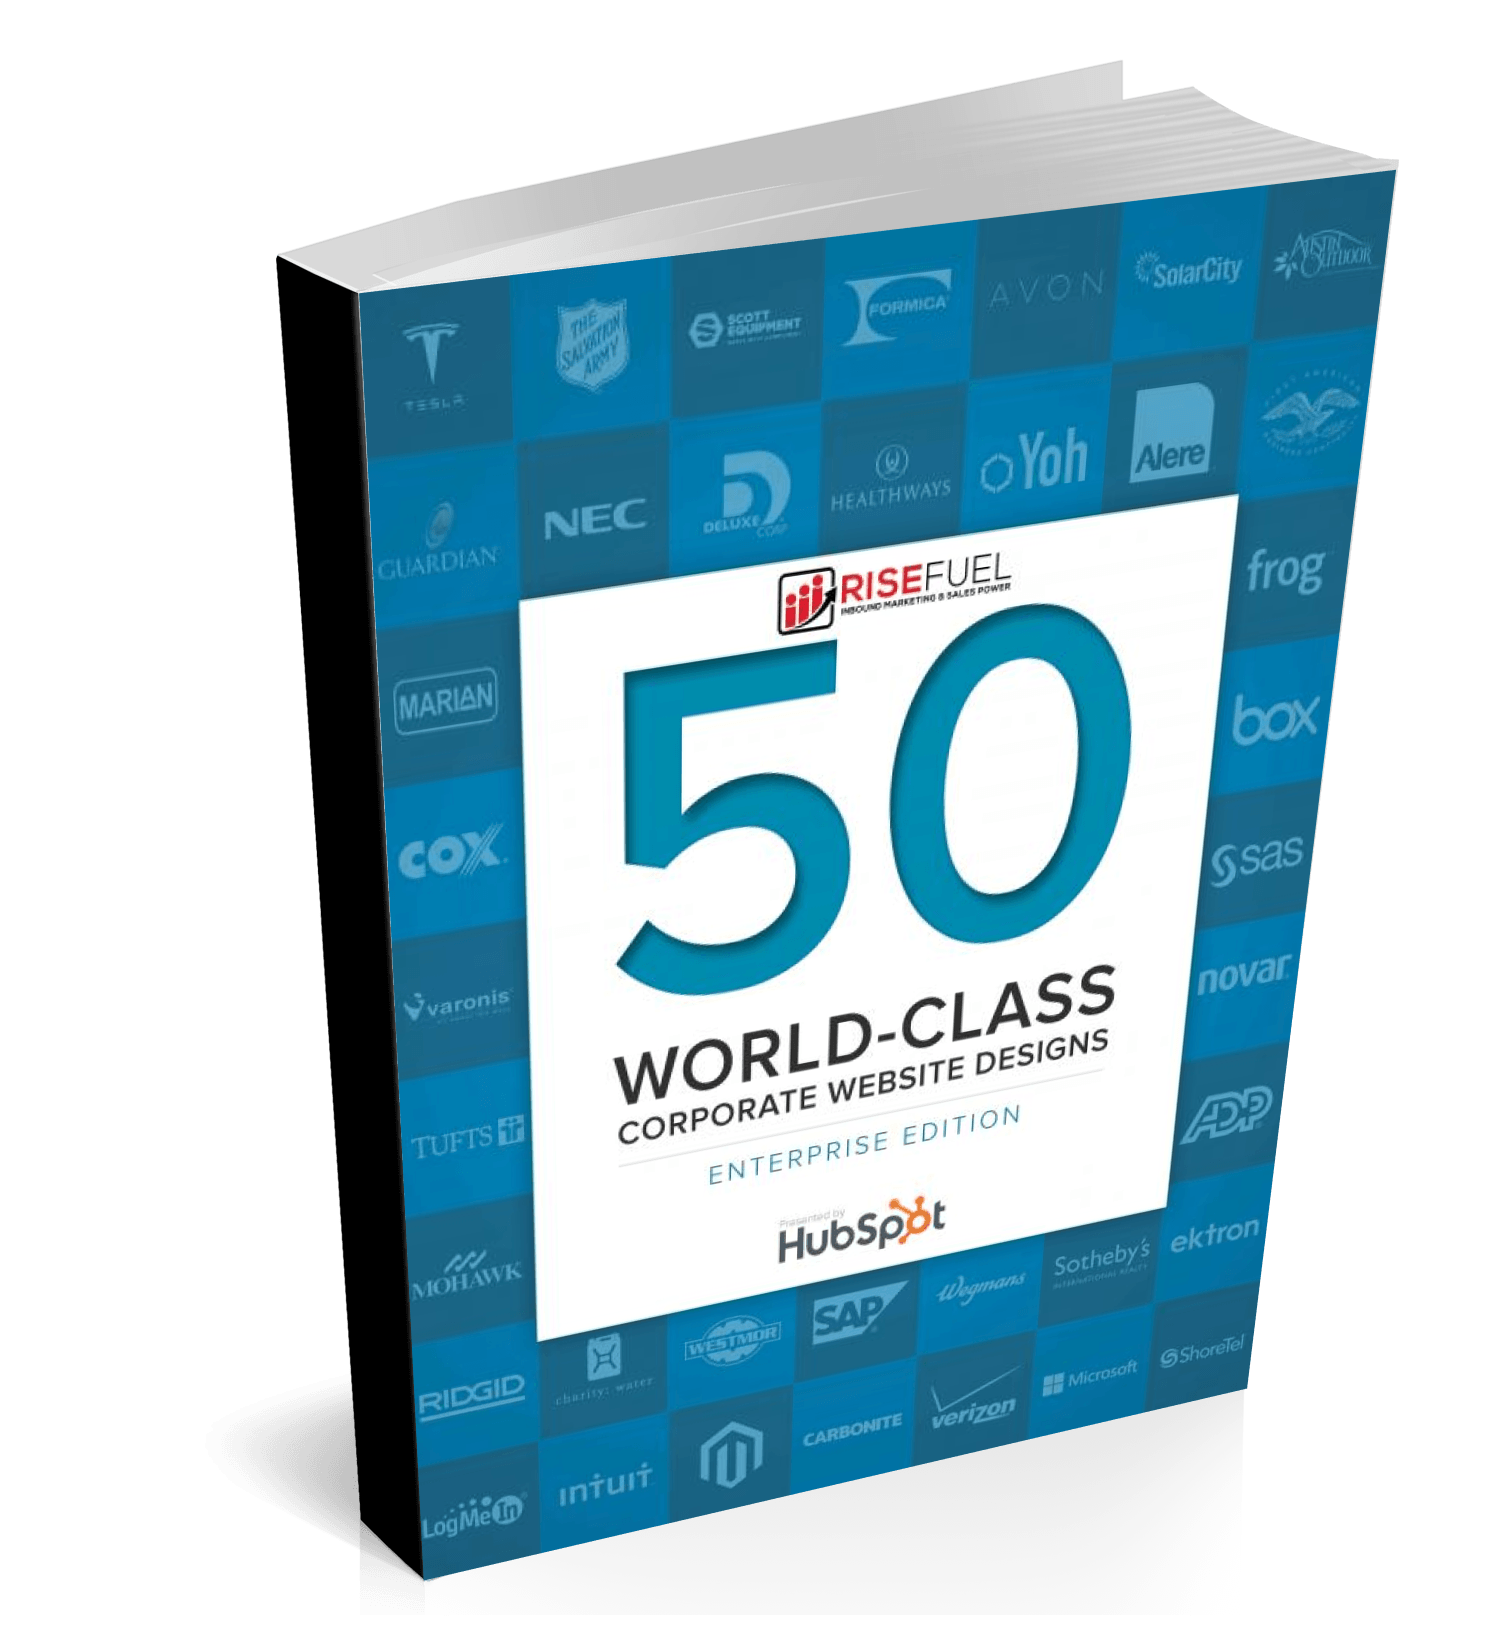 website designs ebook